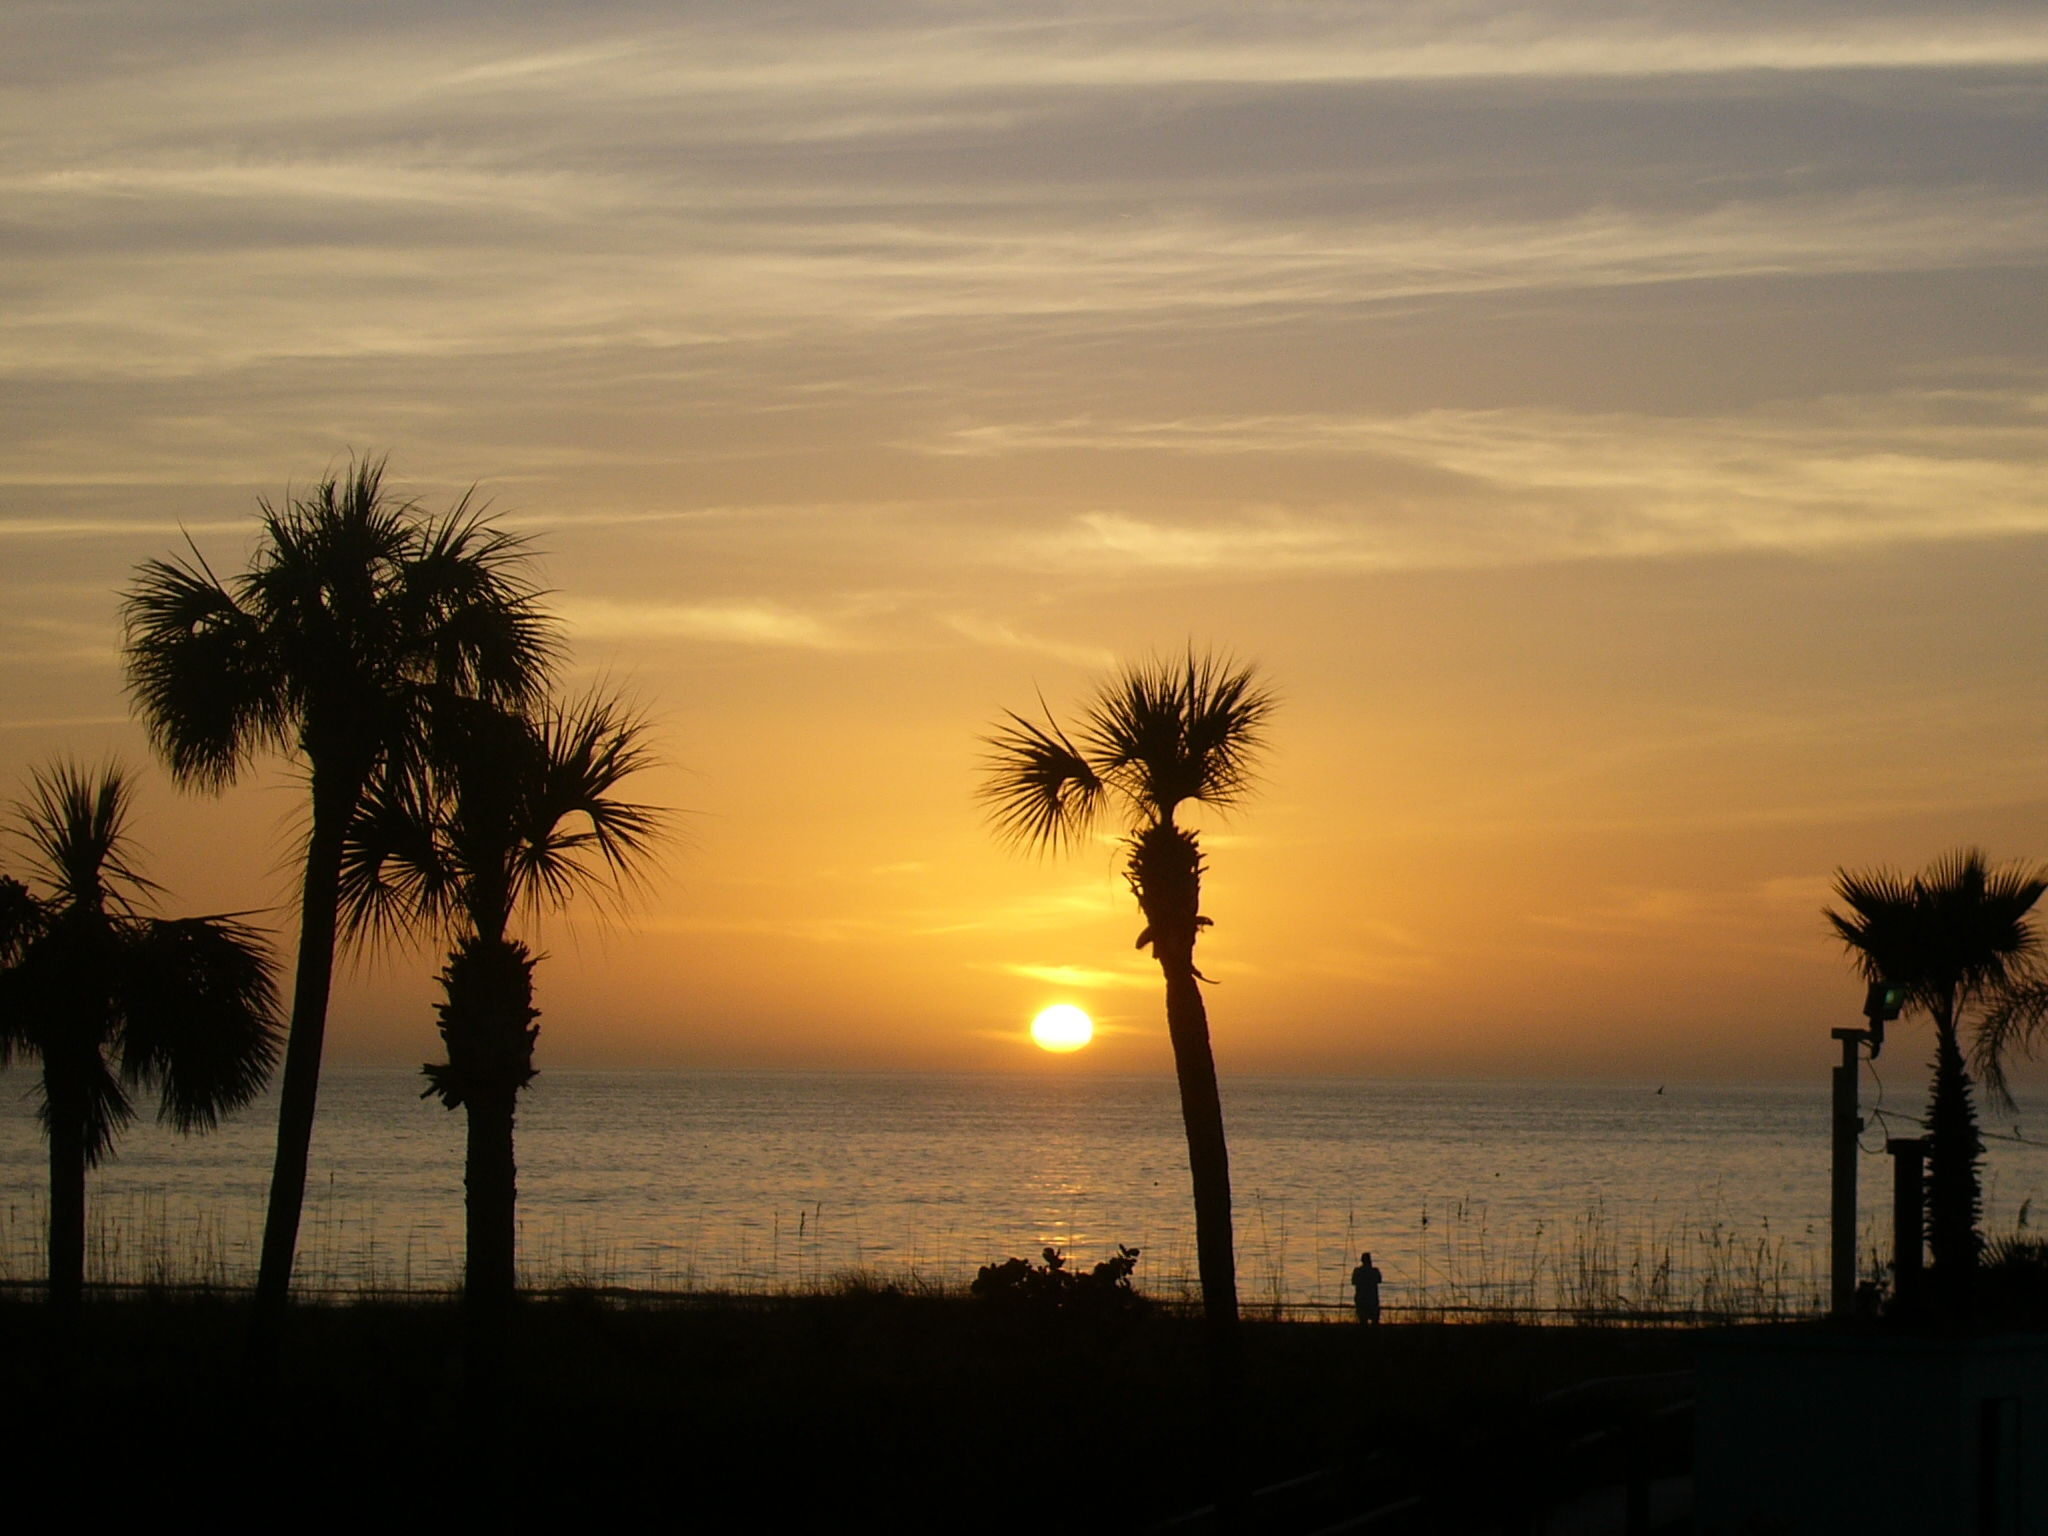 St-Pete beach 2005 01 06